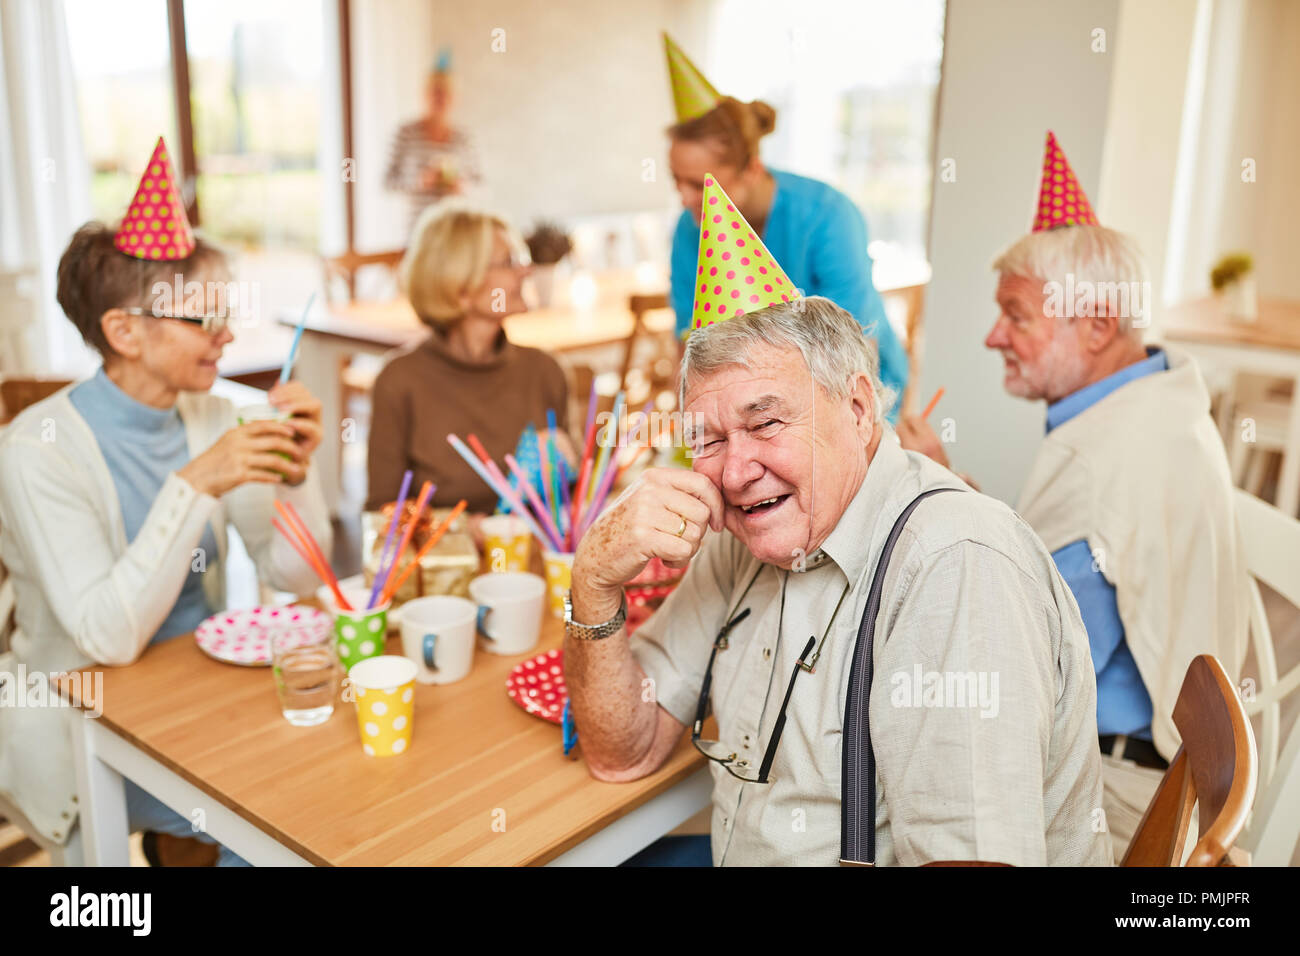 Seniors celebrate birthday together in a retirement home and have fun together - Stock Image